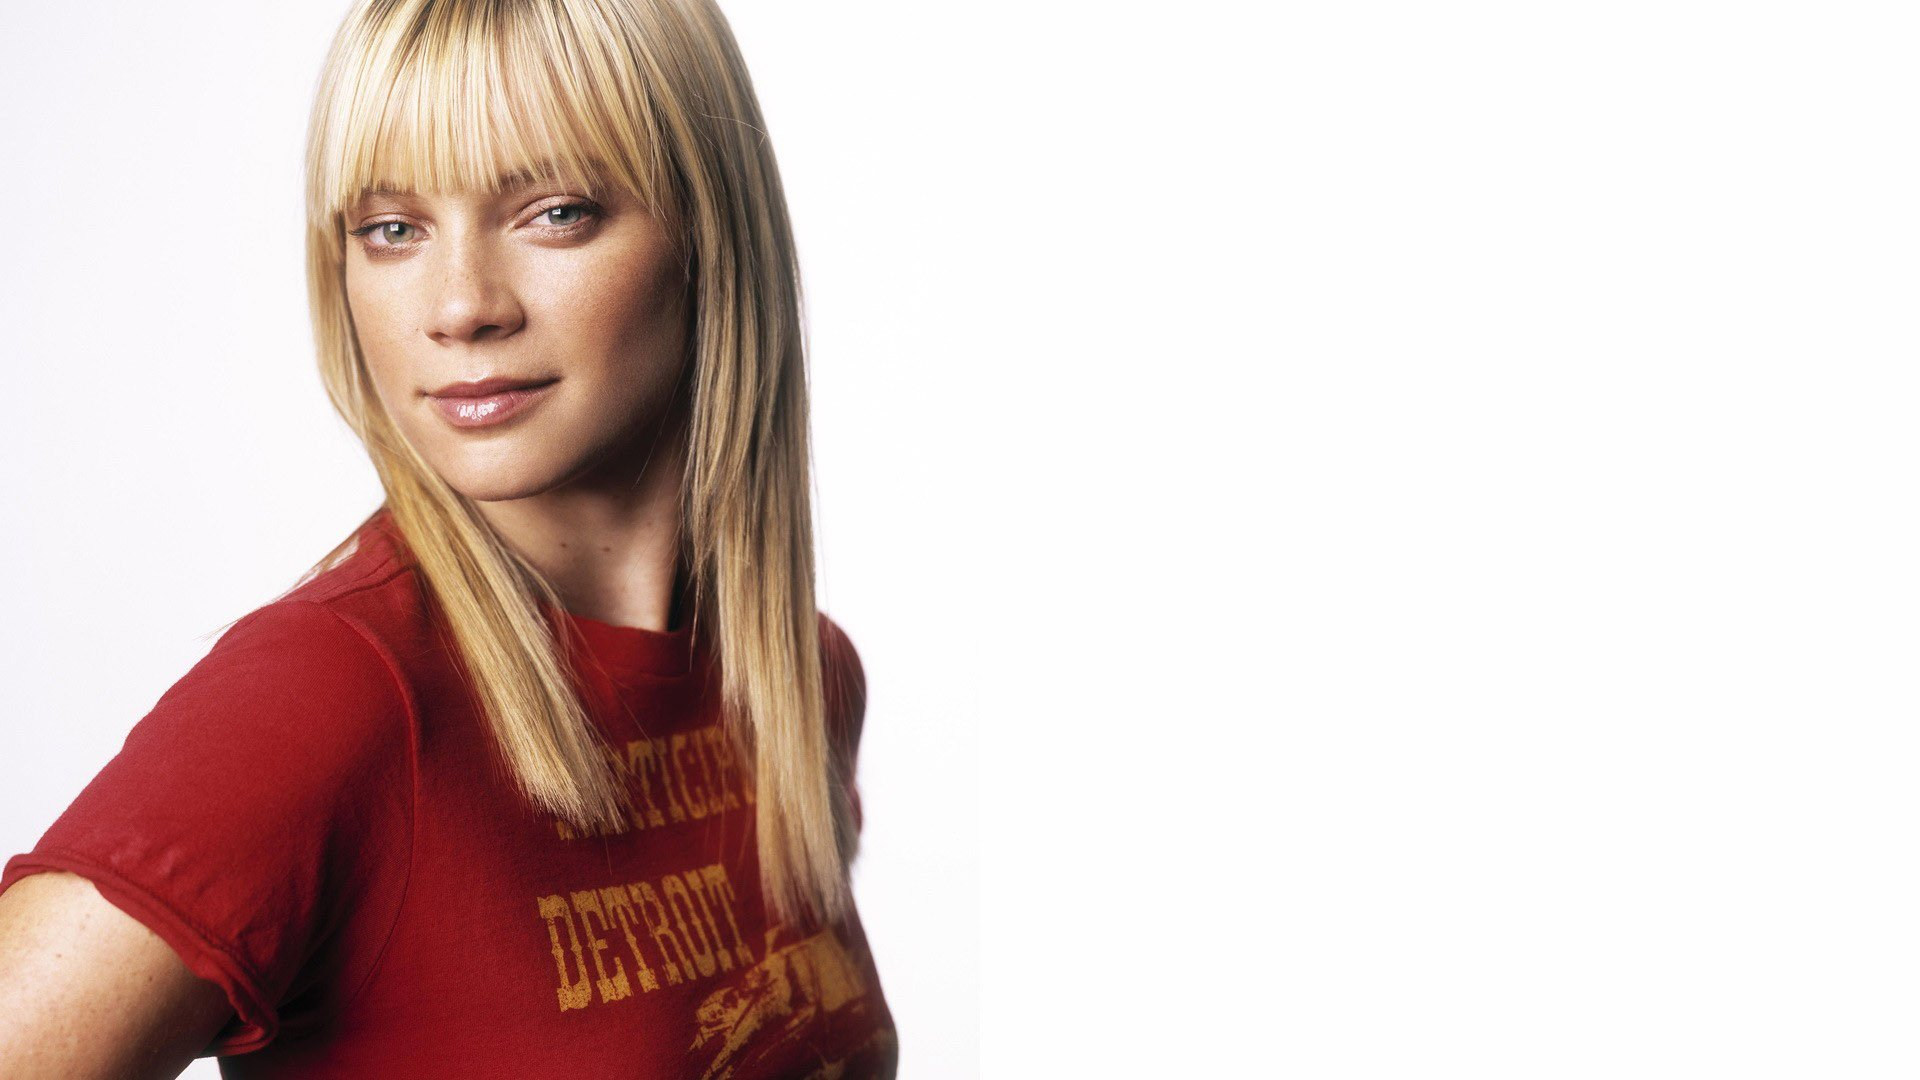 1920x1080 - Amy Smart Wallpapers 14